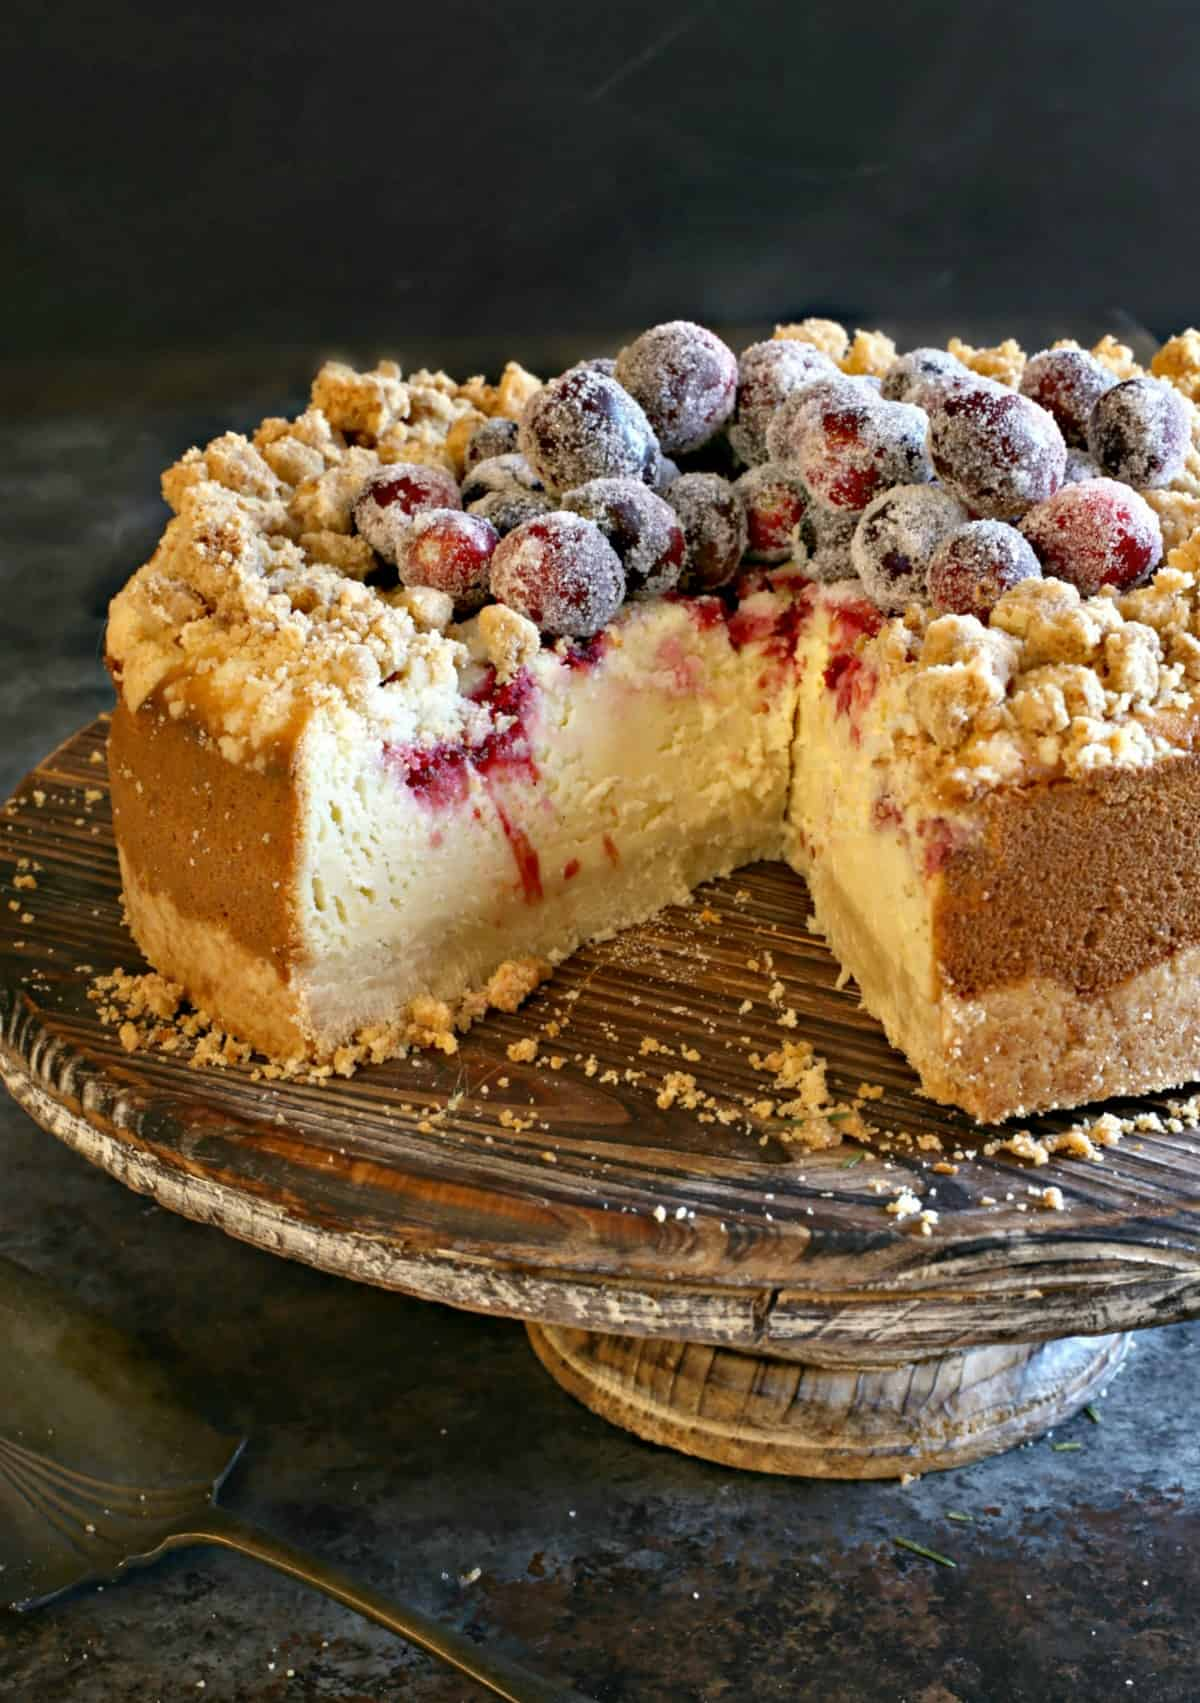 Cranberry cheesecake with slice removed and filling exposed.